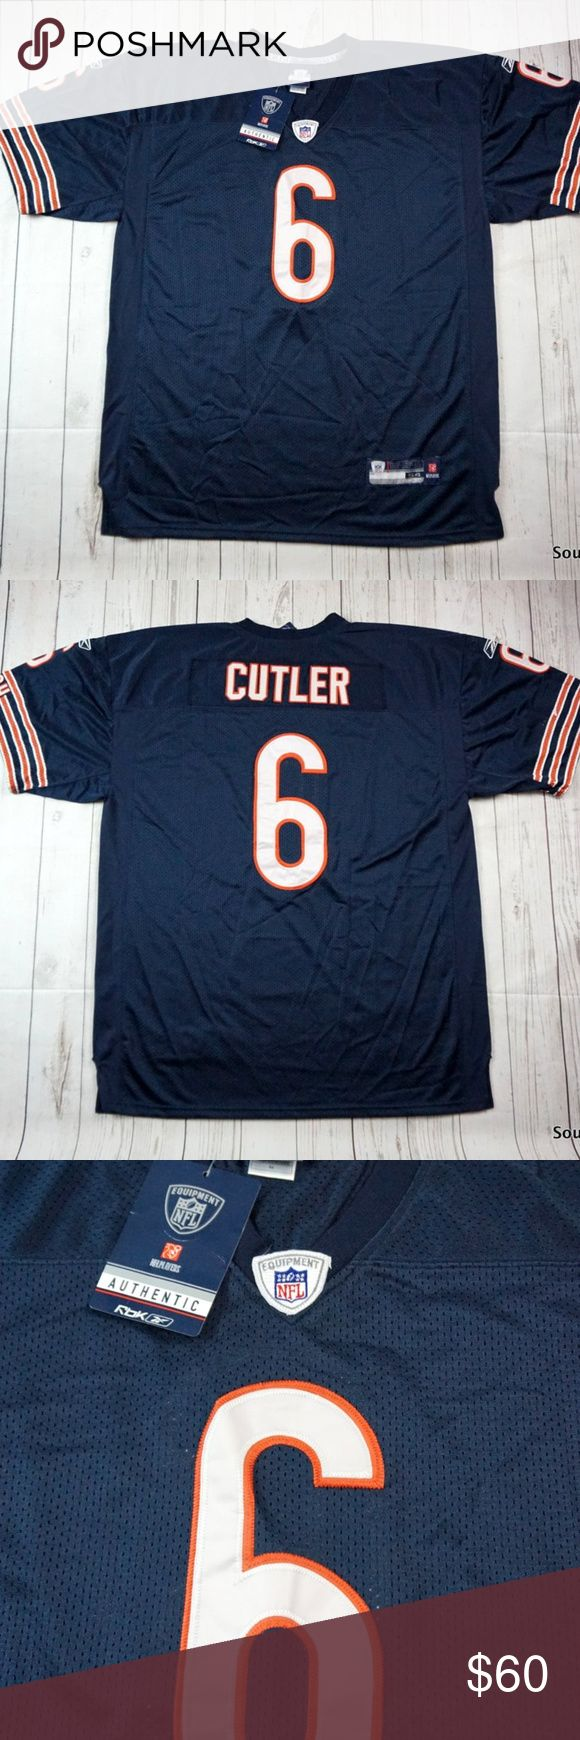 Chicago Bears Jay Cutler #9 Authentic NFL Jersey New With Tags Chicago Bears Jay Cutler #9 Authentic NFL Football Jersey Size 54 NWT  Brand New With Tags and will ship in 1 business day or less from a clean and smoke free environment.  Thanks! Reebok Shirts